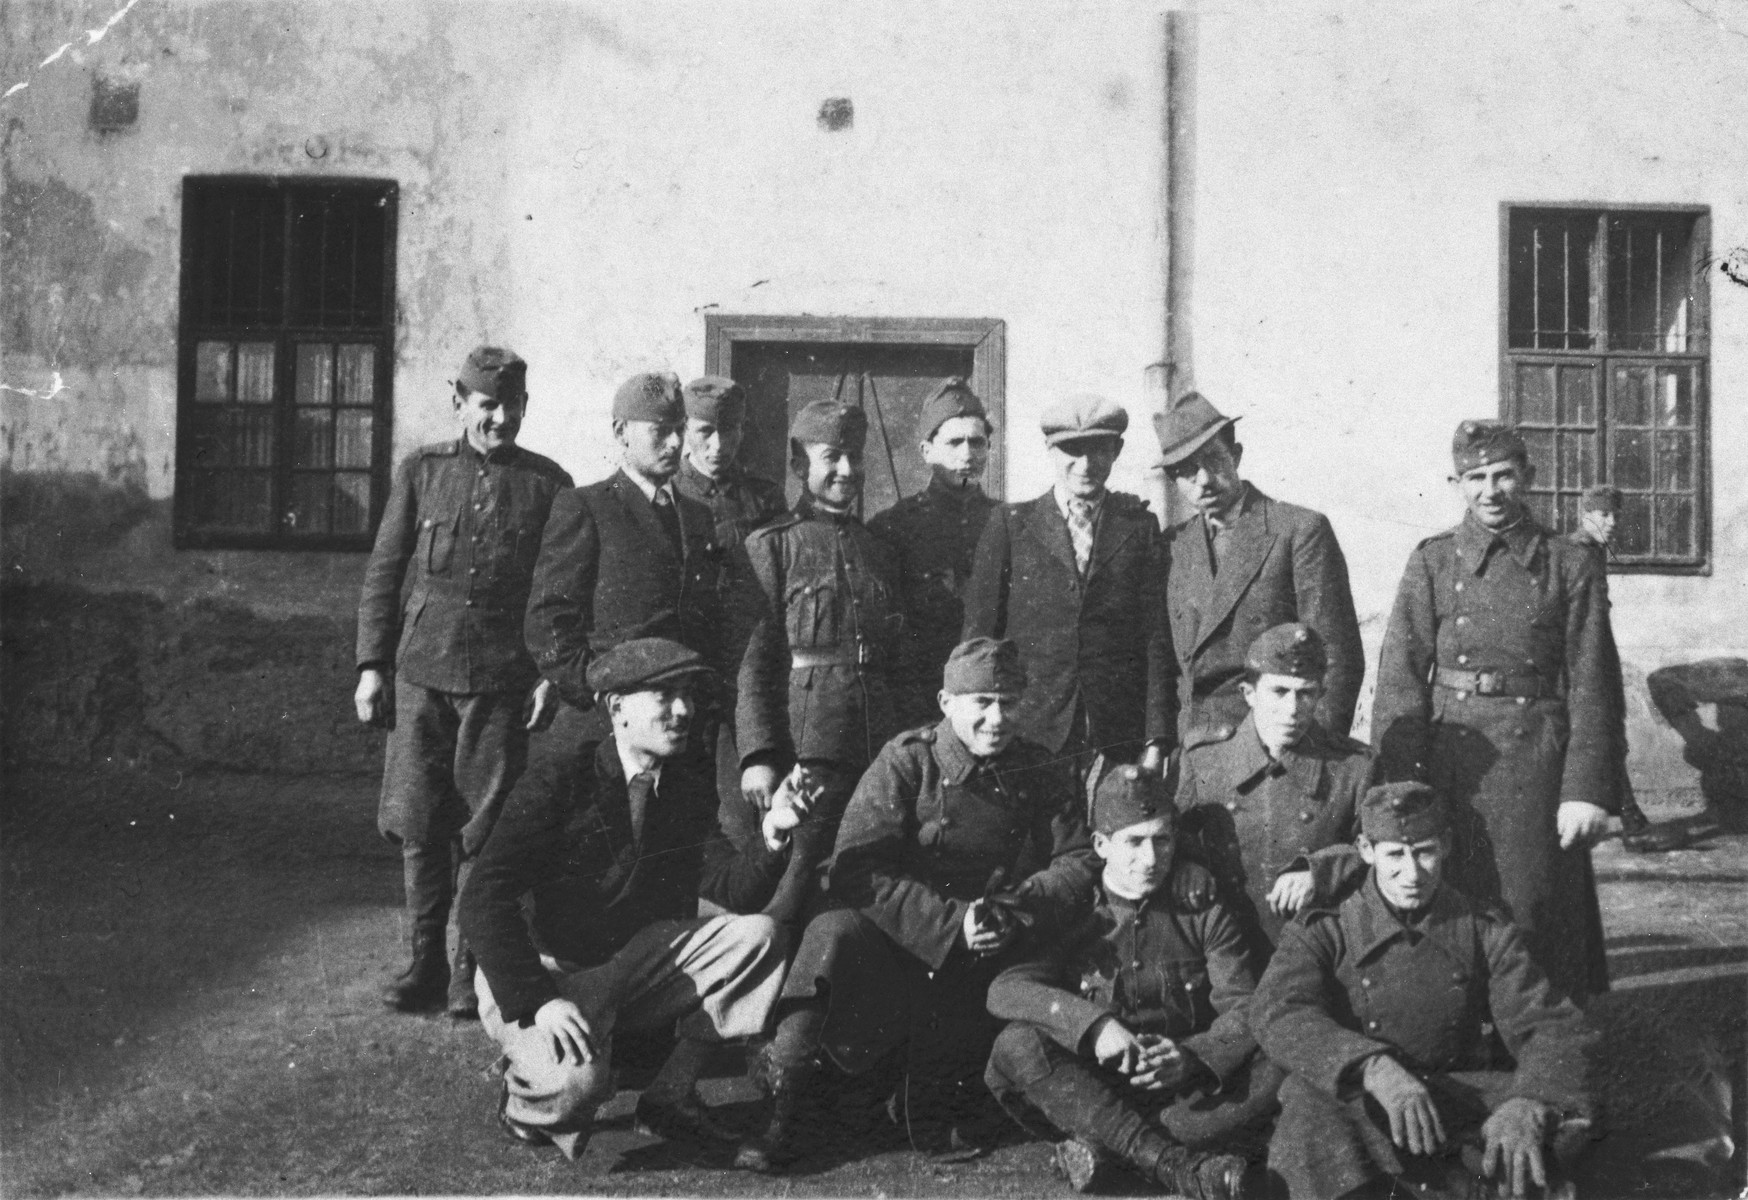 Group portrait of former Jewish soldiers now conscripted into a Hungarian forced labor battalion.  Jeno Lebowiz is standing third from the right.